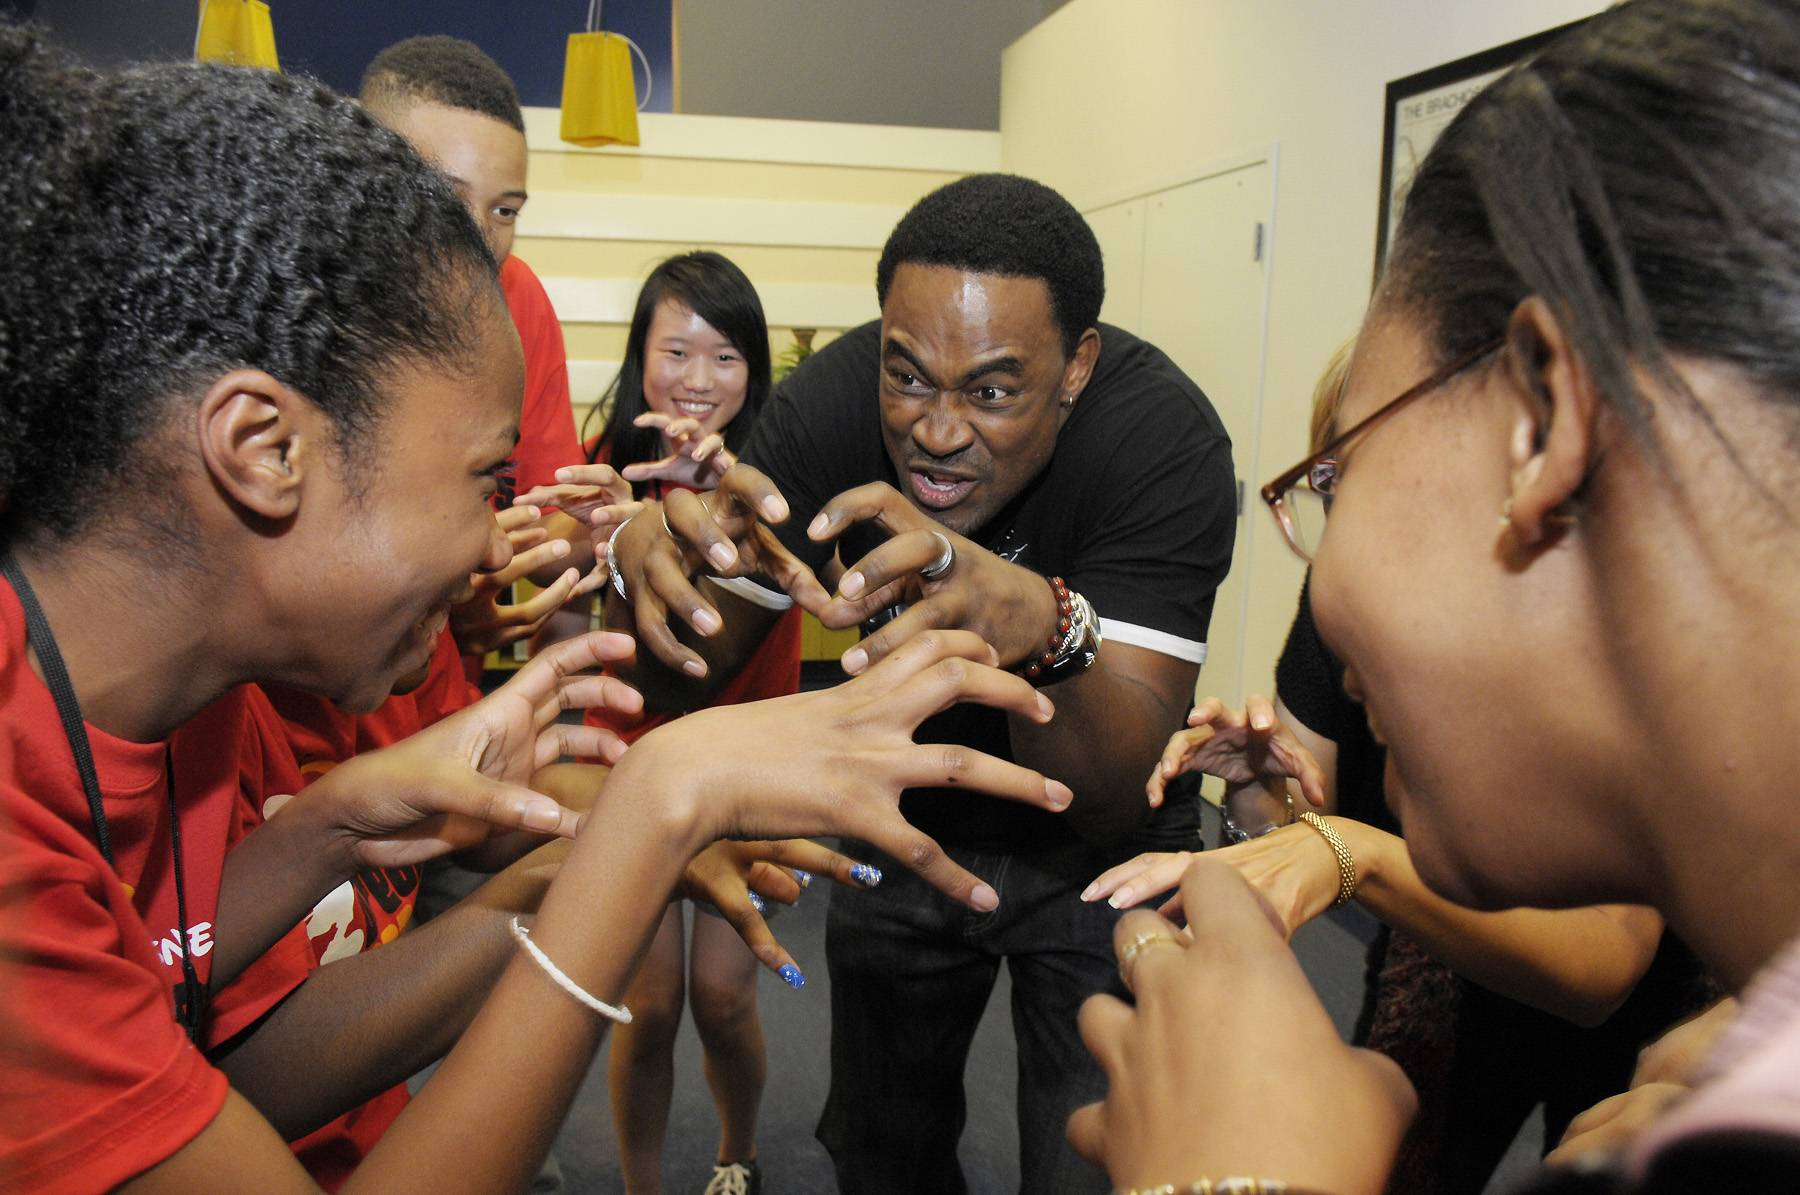 Acting on Cue - Lamman Rucker decides to flex his acting chops, joining in on an improvisation exercise during an acting workshop on March 10. (Photo: Phelan Ebenhack)